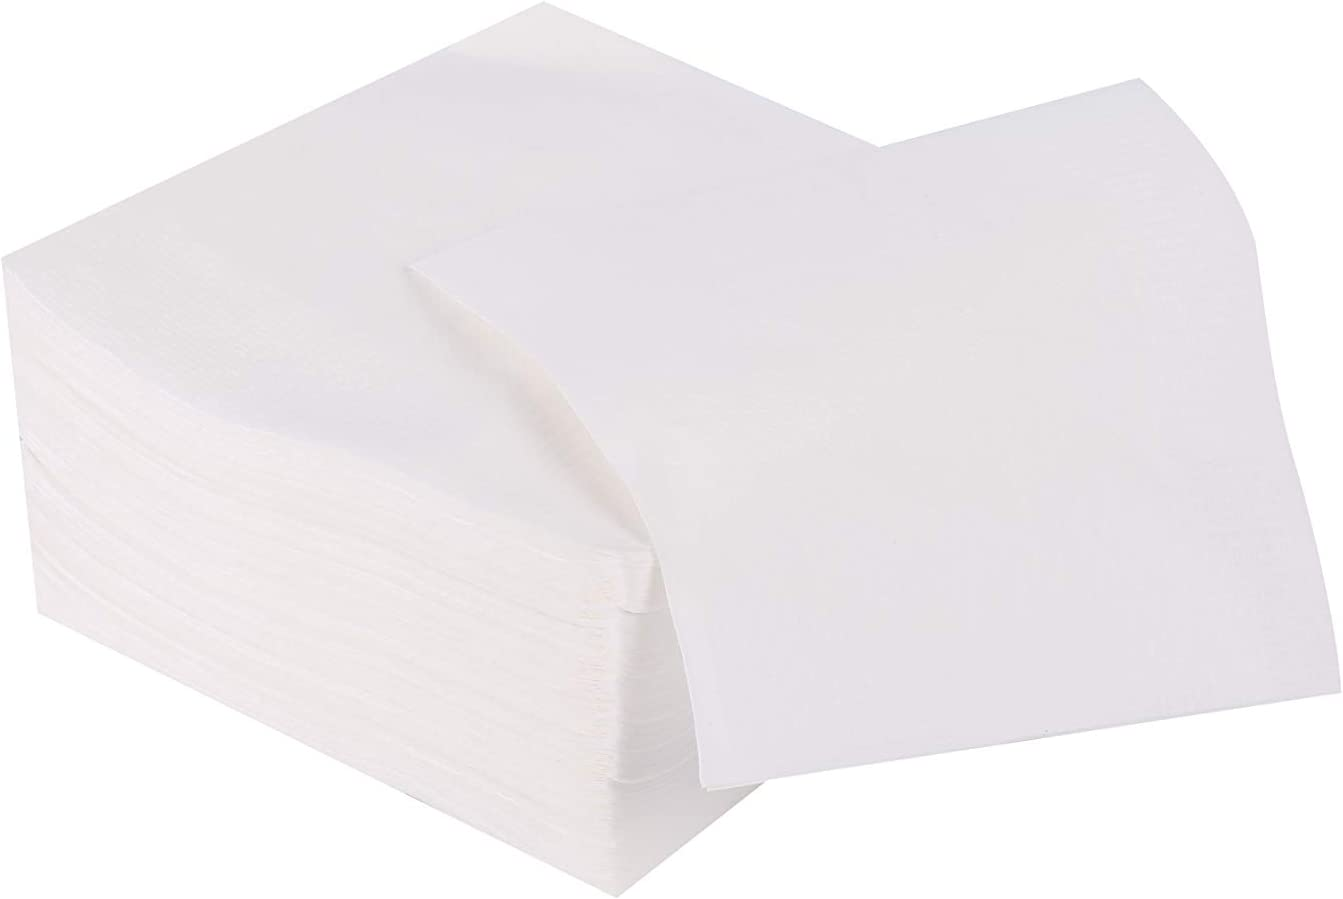 Gmark White Paper Beverage Napkins - 500 Counts - Bar Events Home Function Restaurant Paper Napkins GM1118A